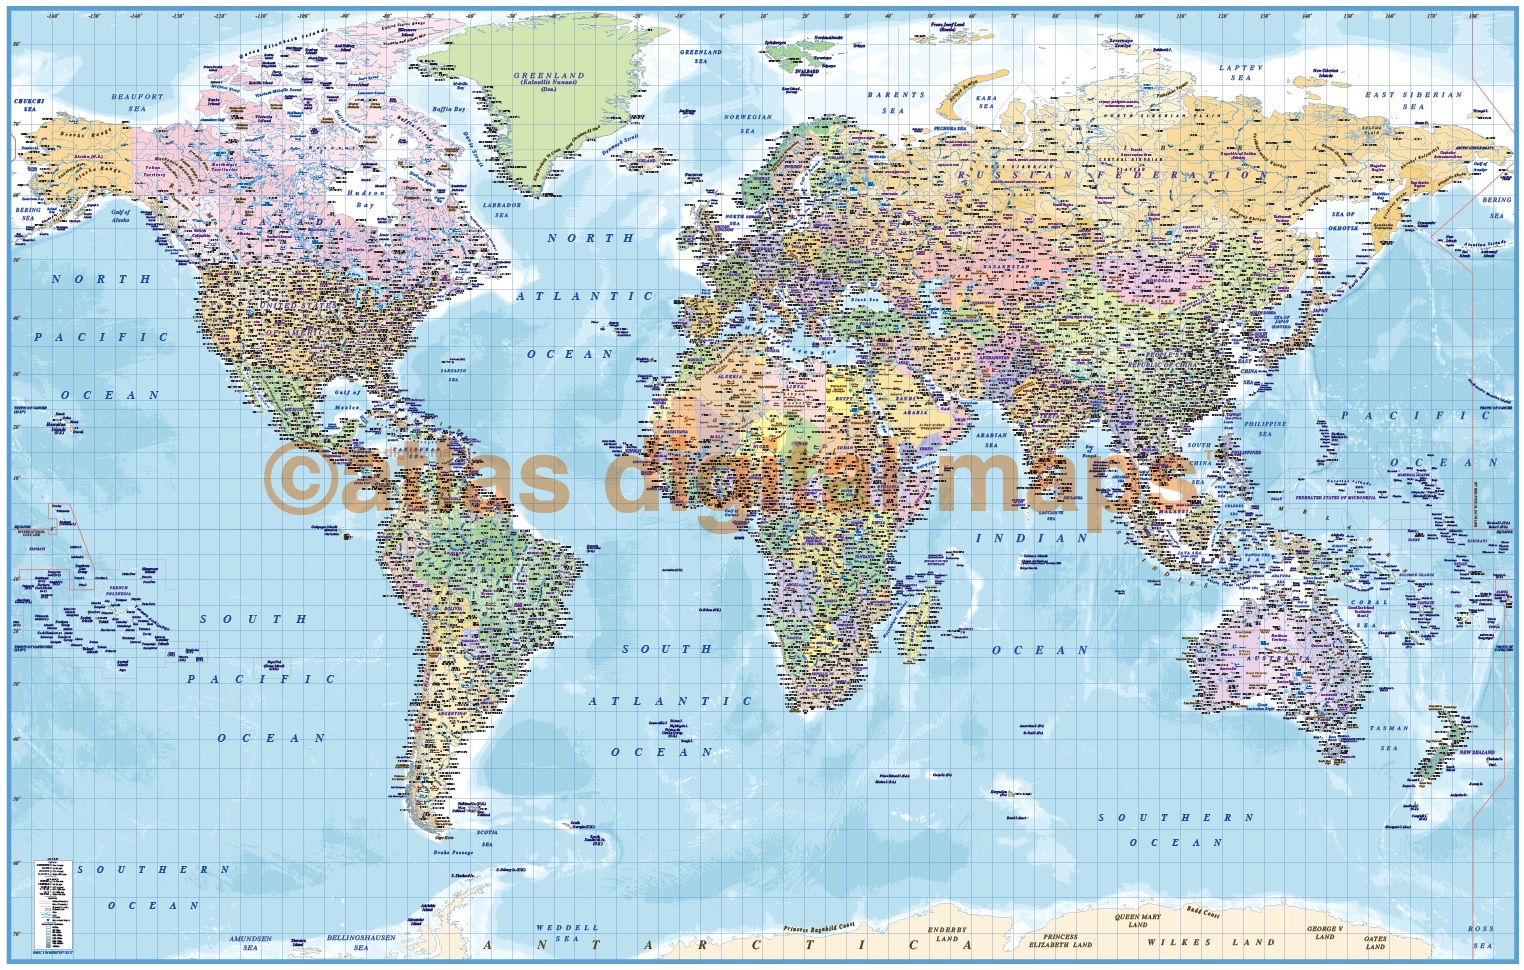 Framed canvas world wall map political ocean contours size 60 framed canvas world map political ocean contours size 60w x 38d gumiabroncs Image collections